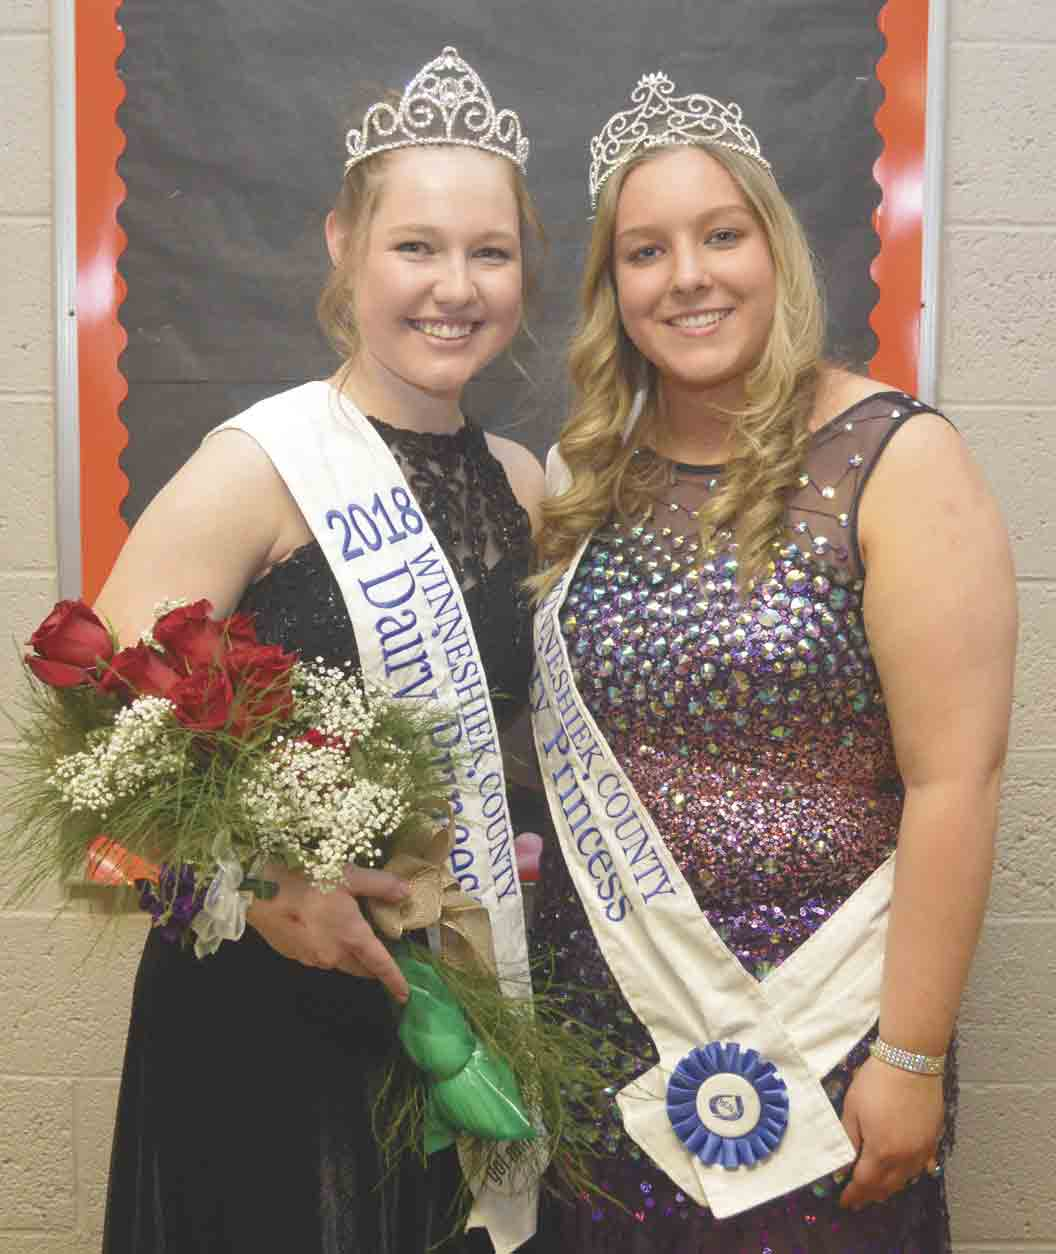 Crowned at Saturday night's Winneshiek County Dairy Banquet in Ossian were Dairy Princess Bailey Miculinich (left) and Alternate Dairy Princess Stacia Sexton. See more photos inside of Dairy royalty and award-winners from the annual banquet. (Zakary Kriener photo)	 	2018...